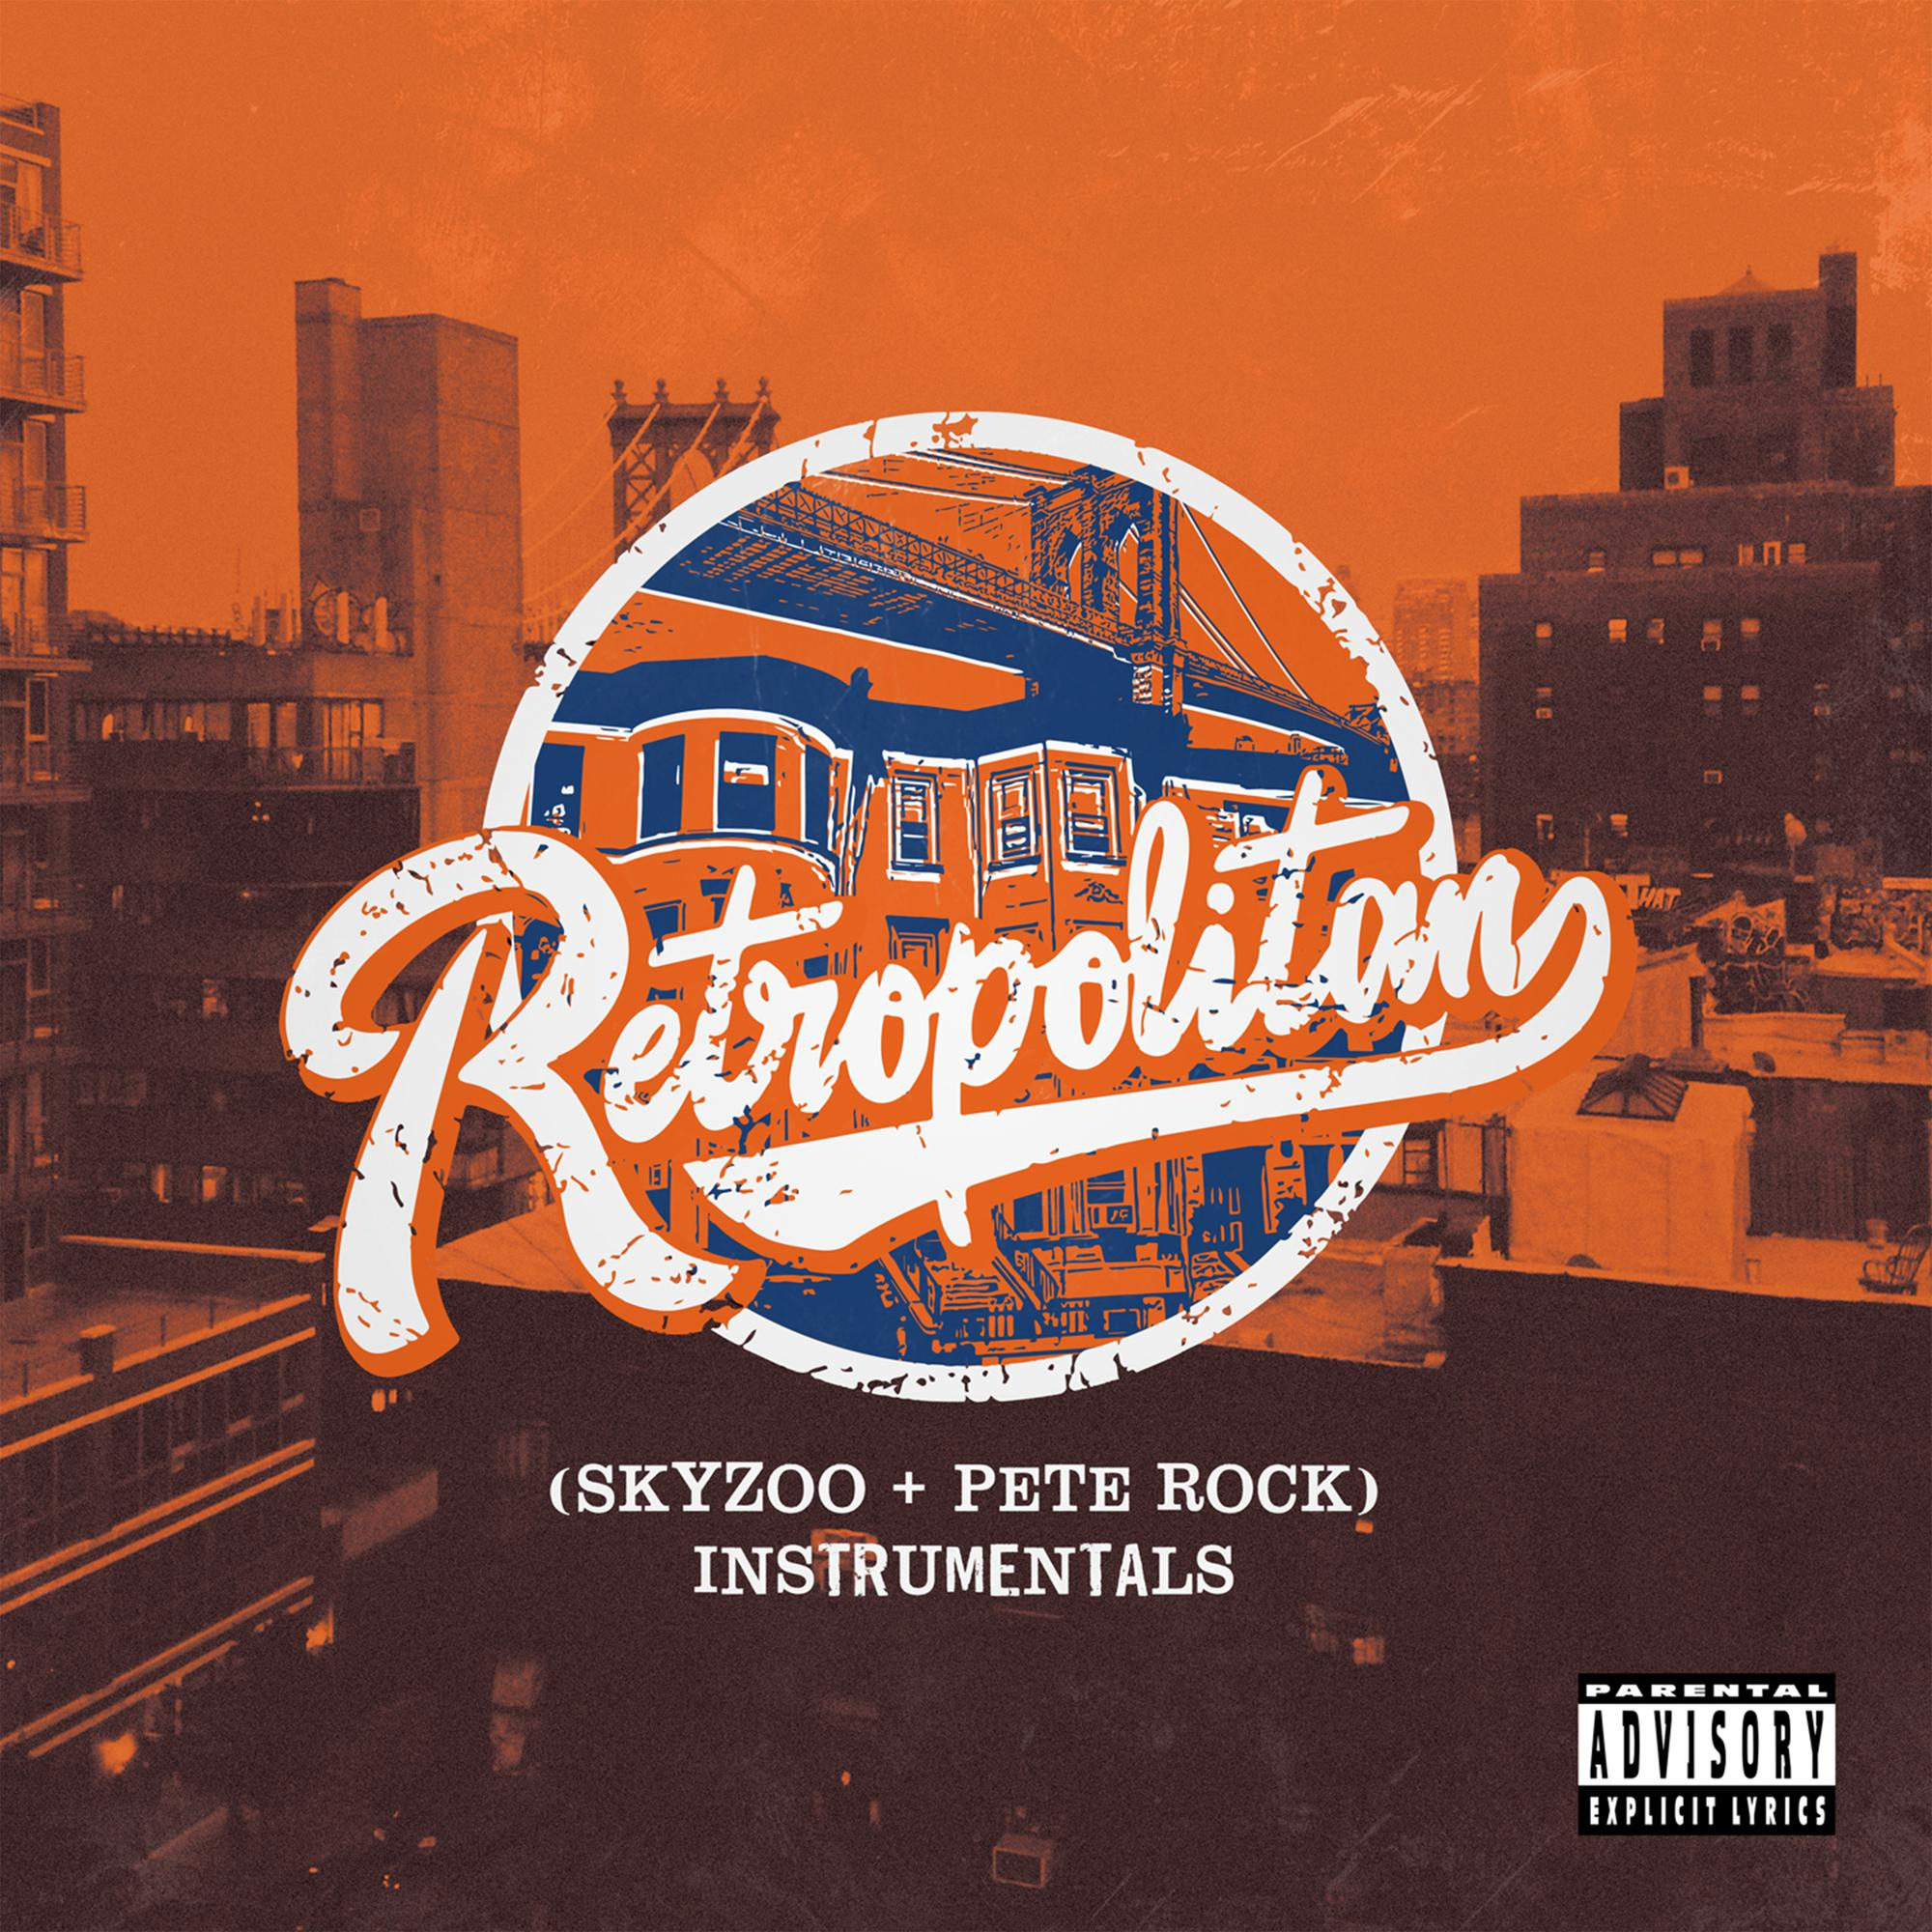 Skyzoo + Pete Rock - Retropolitan [RSD Drops Aug 2020]